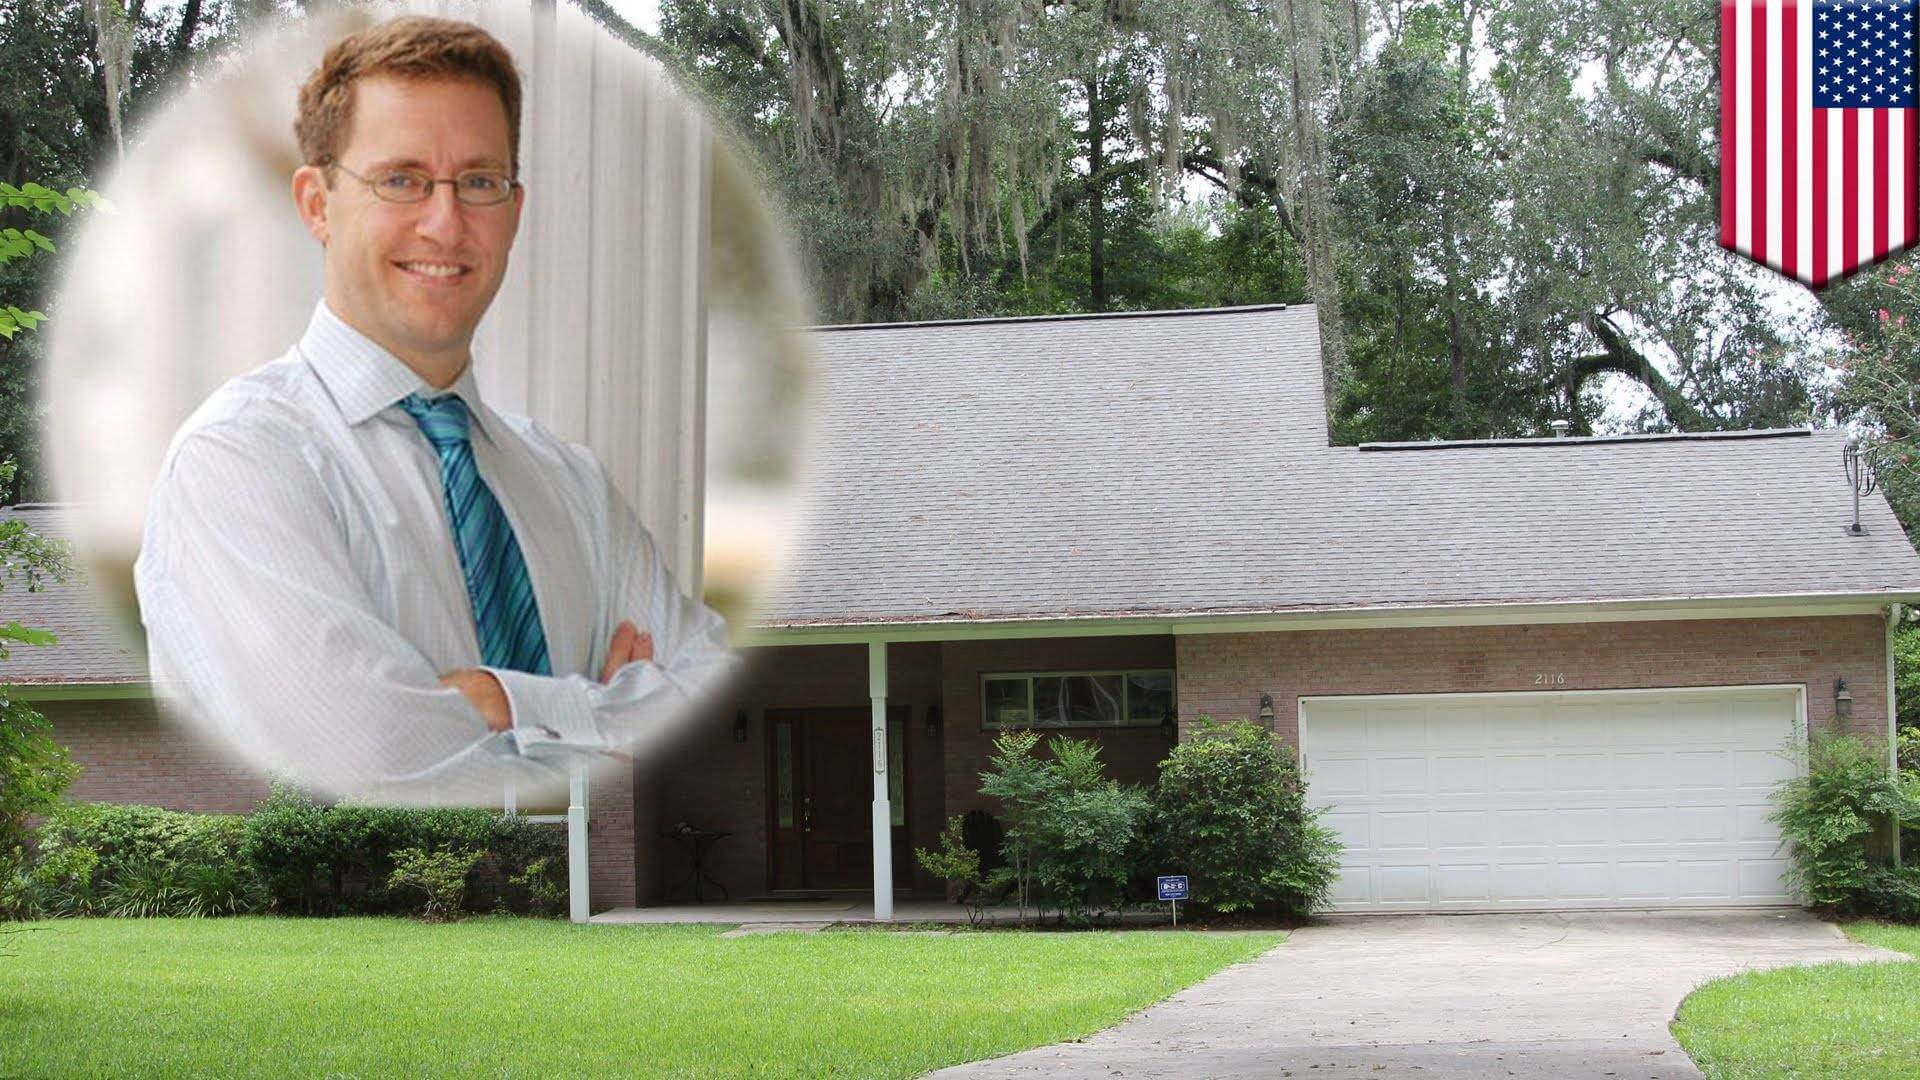 Arrest Made in Murder of Law Professor Dan Markel